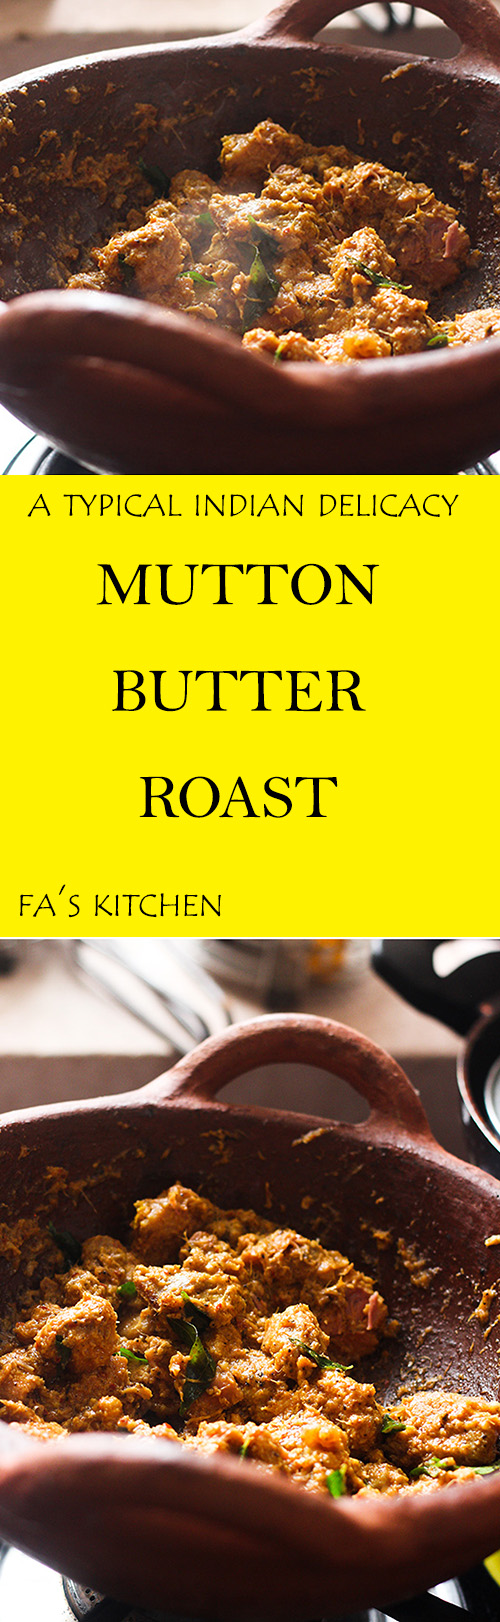 Mutton Butter Roast, a very delicious and yummy lamb dish that is absolutely a delight. This is a very simple yet so royal dish.